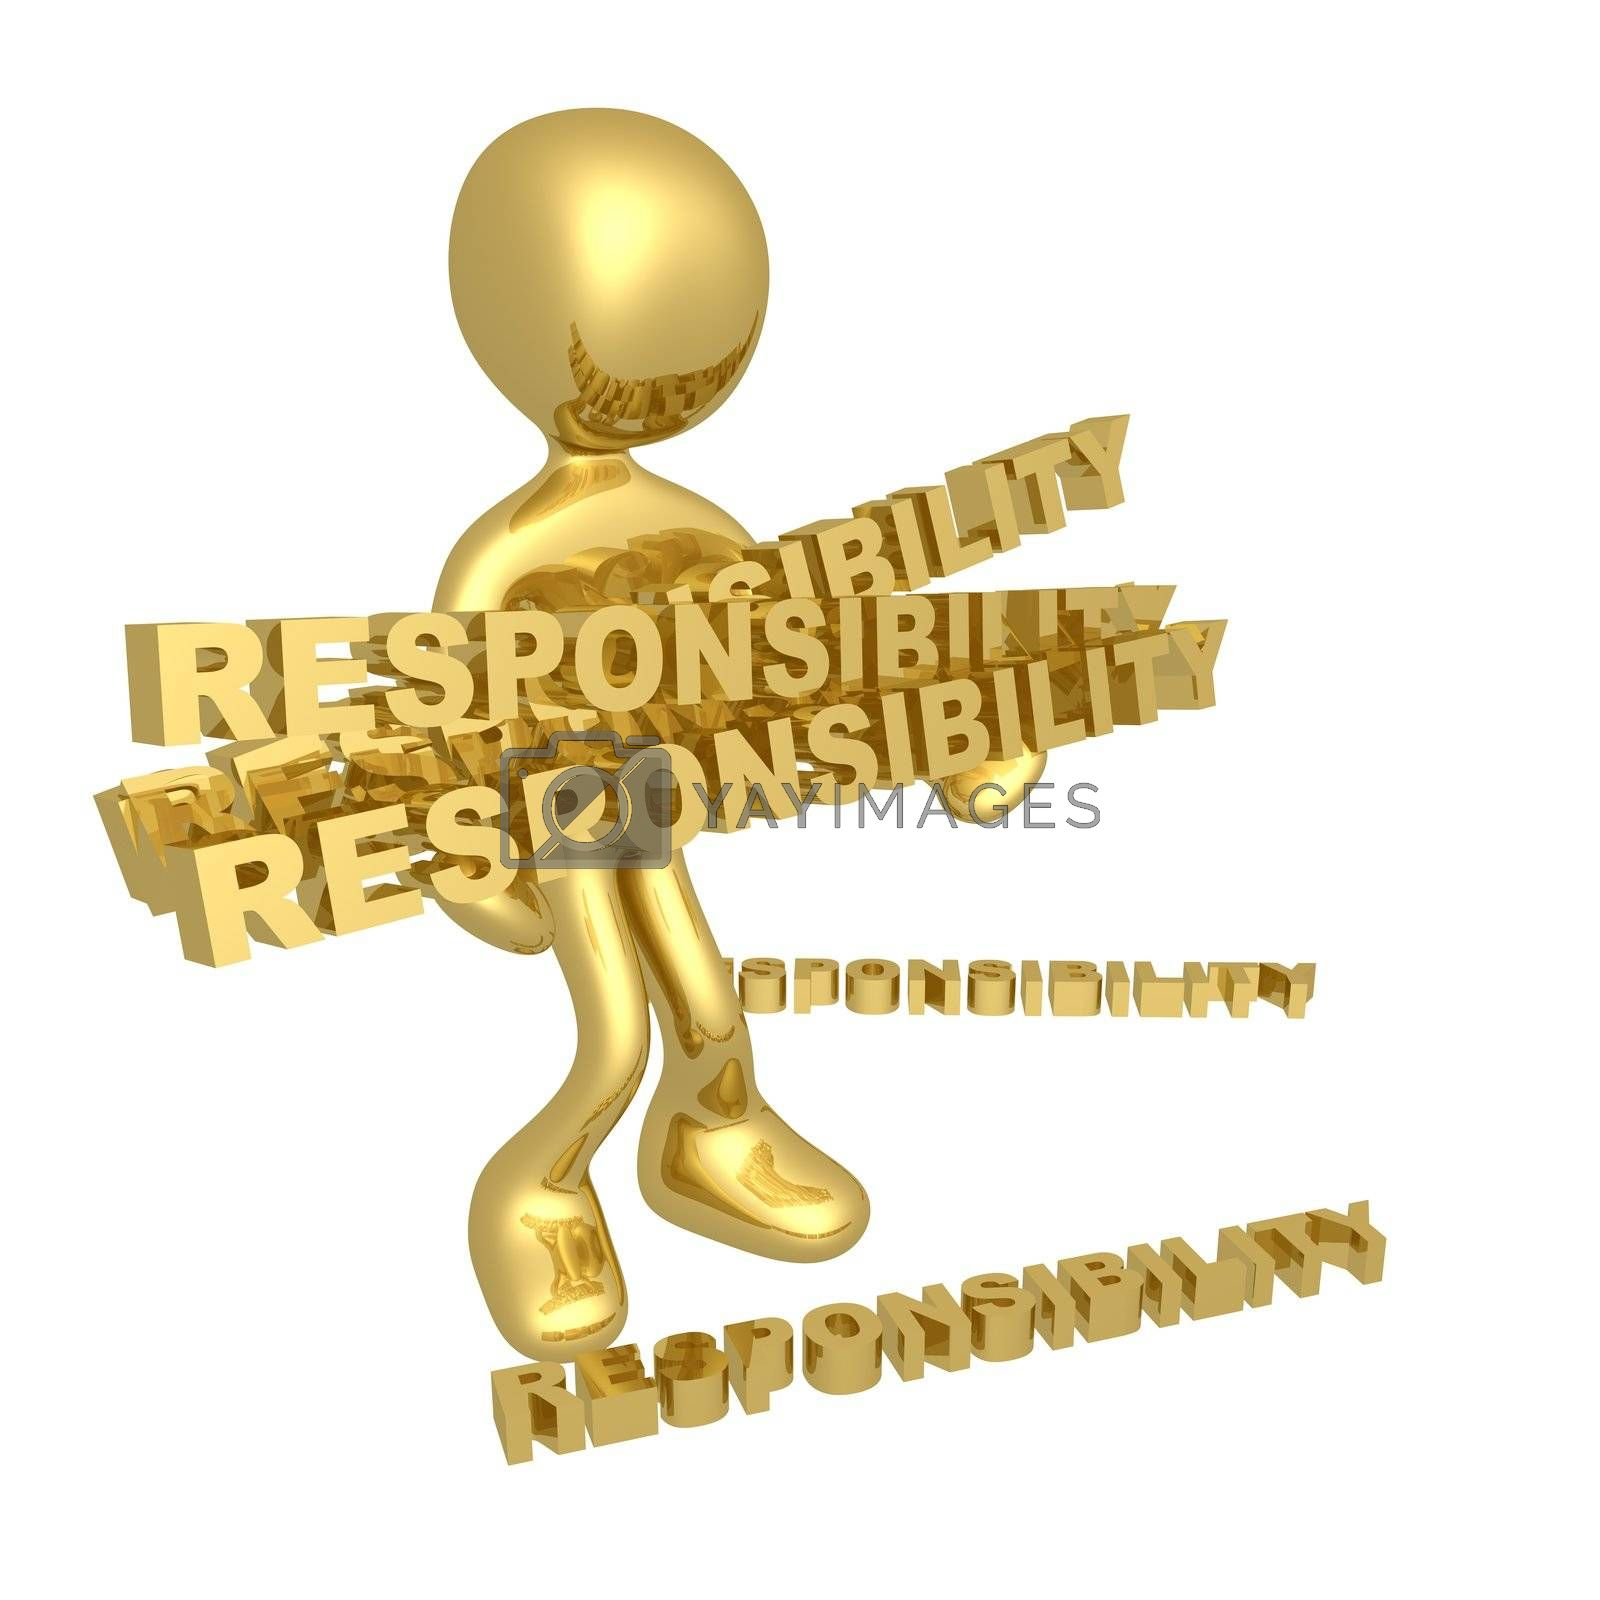 Lots of responsibilities by 3pod